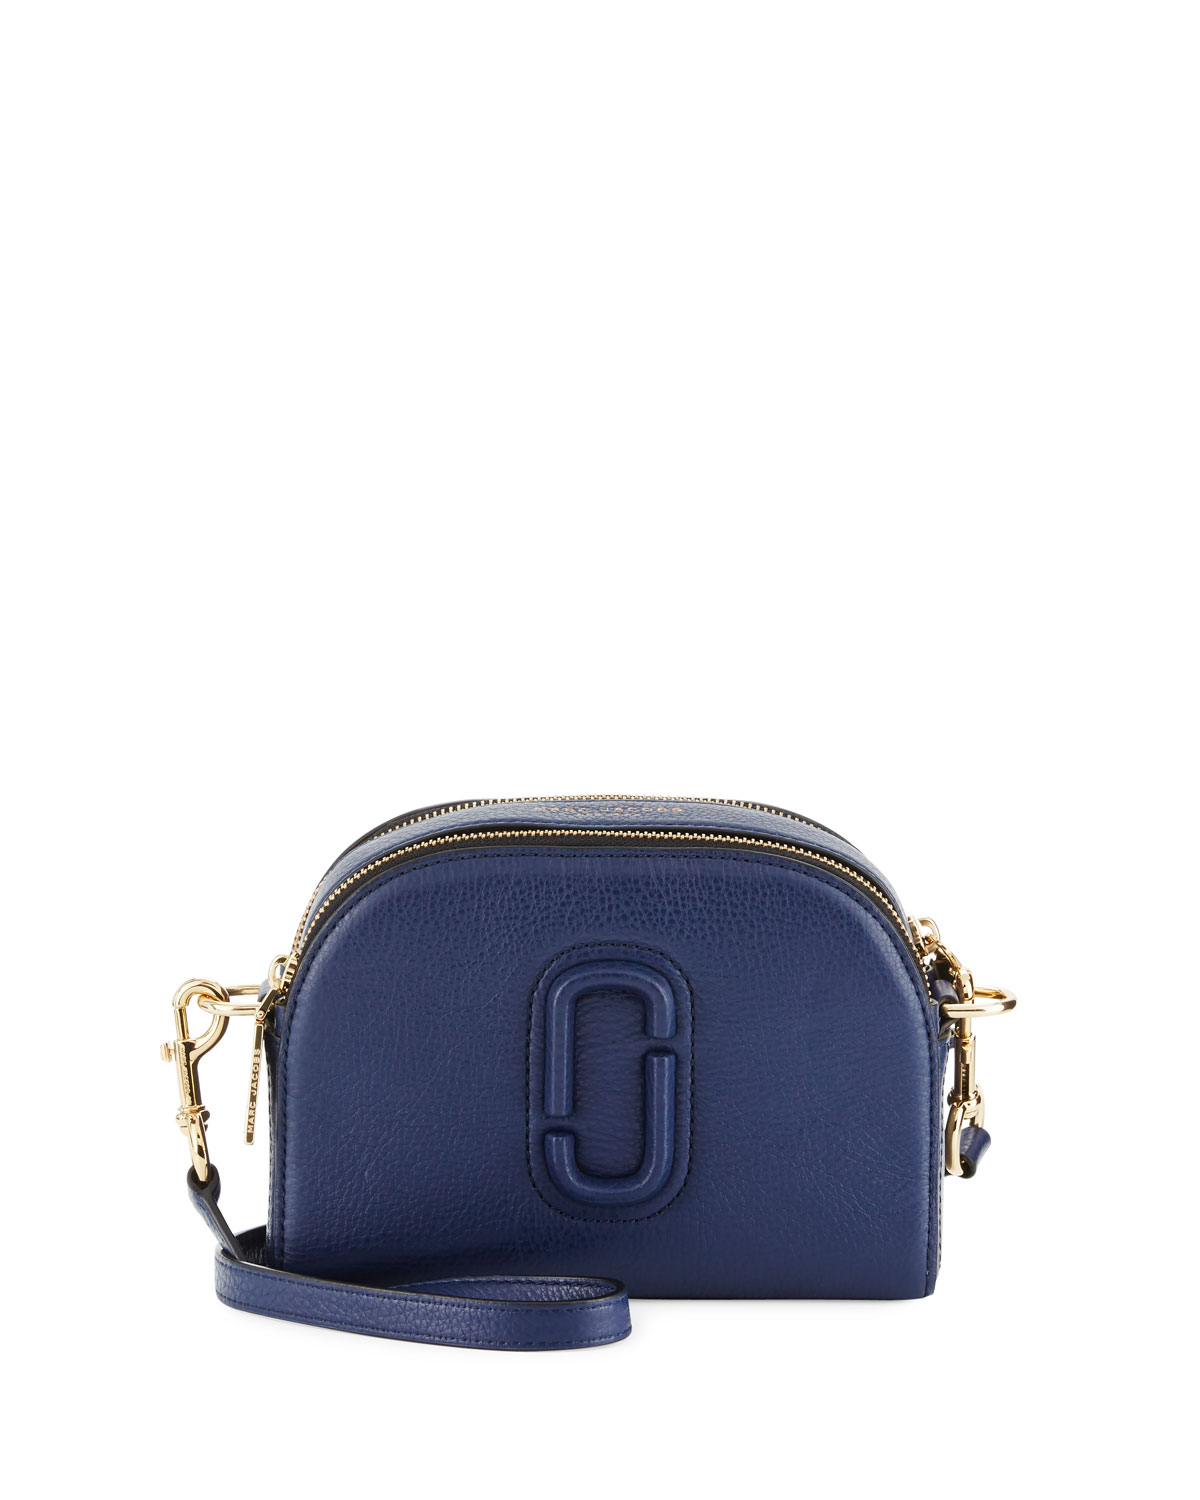 a69ff88971ab Marc Jacobs Shutter Small Leather Camera Bag